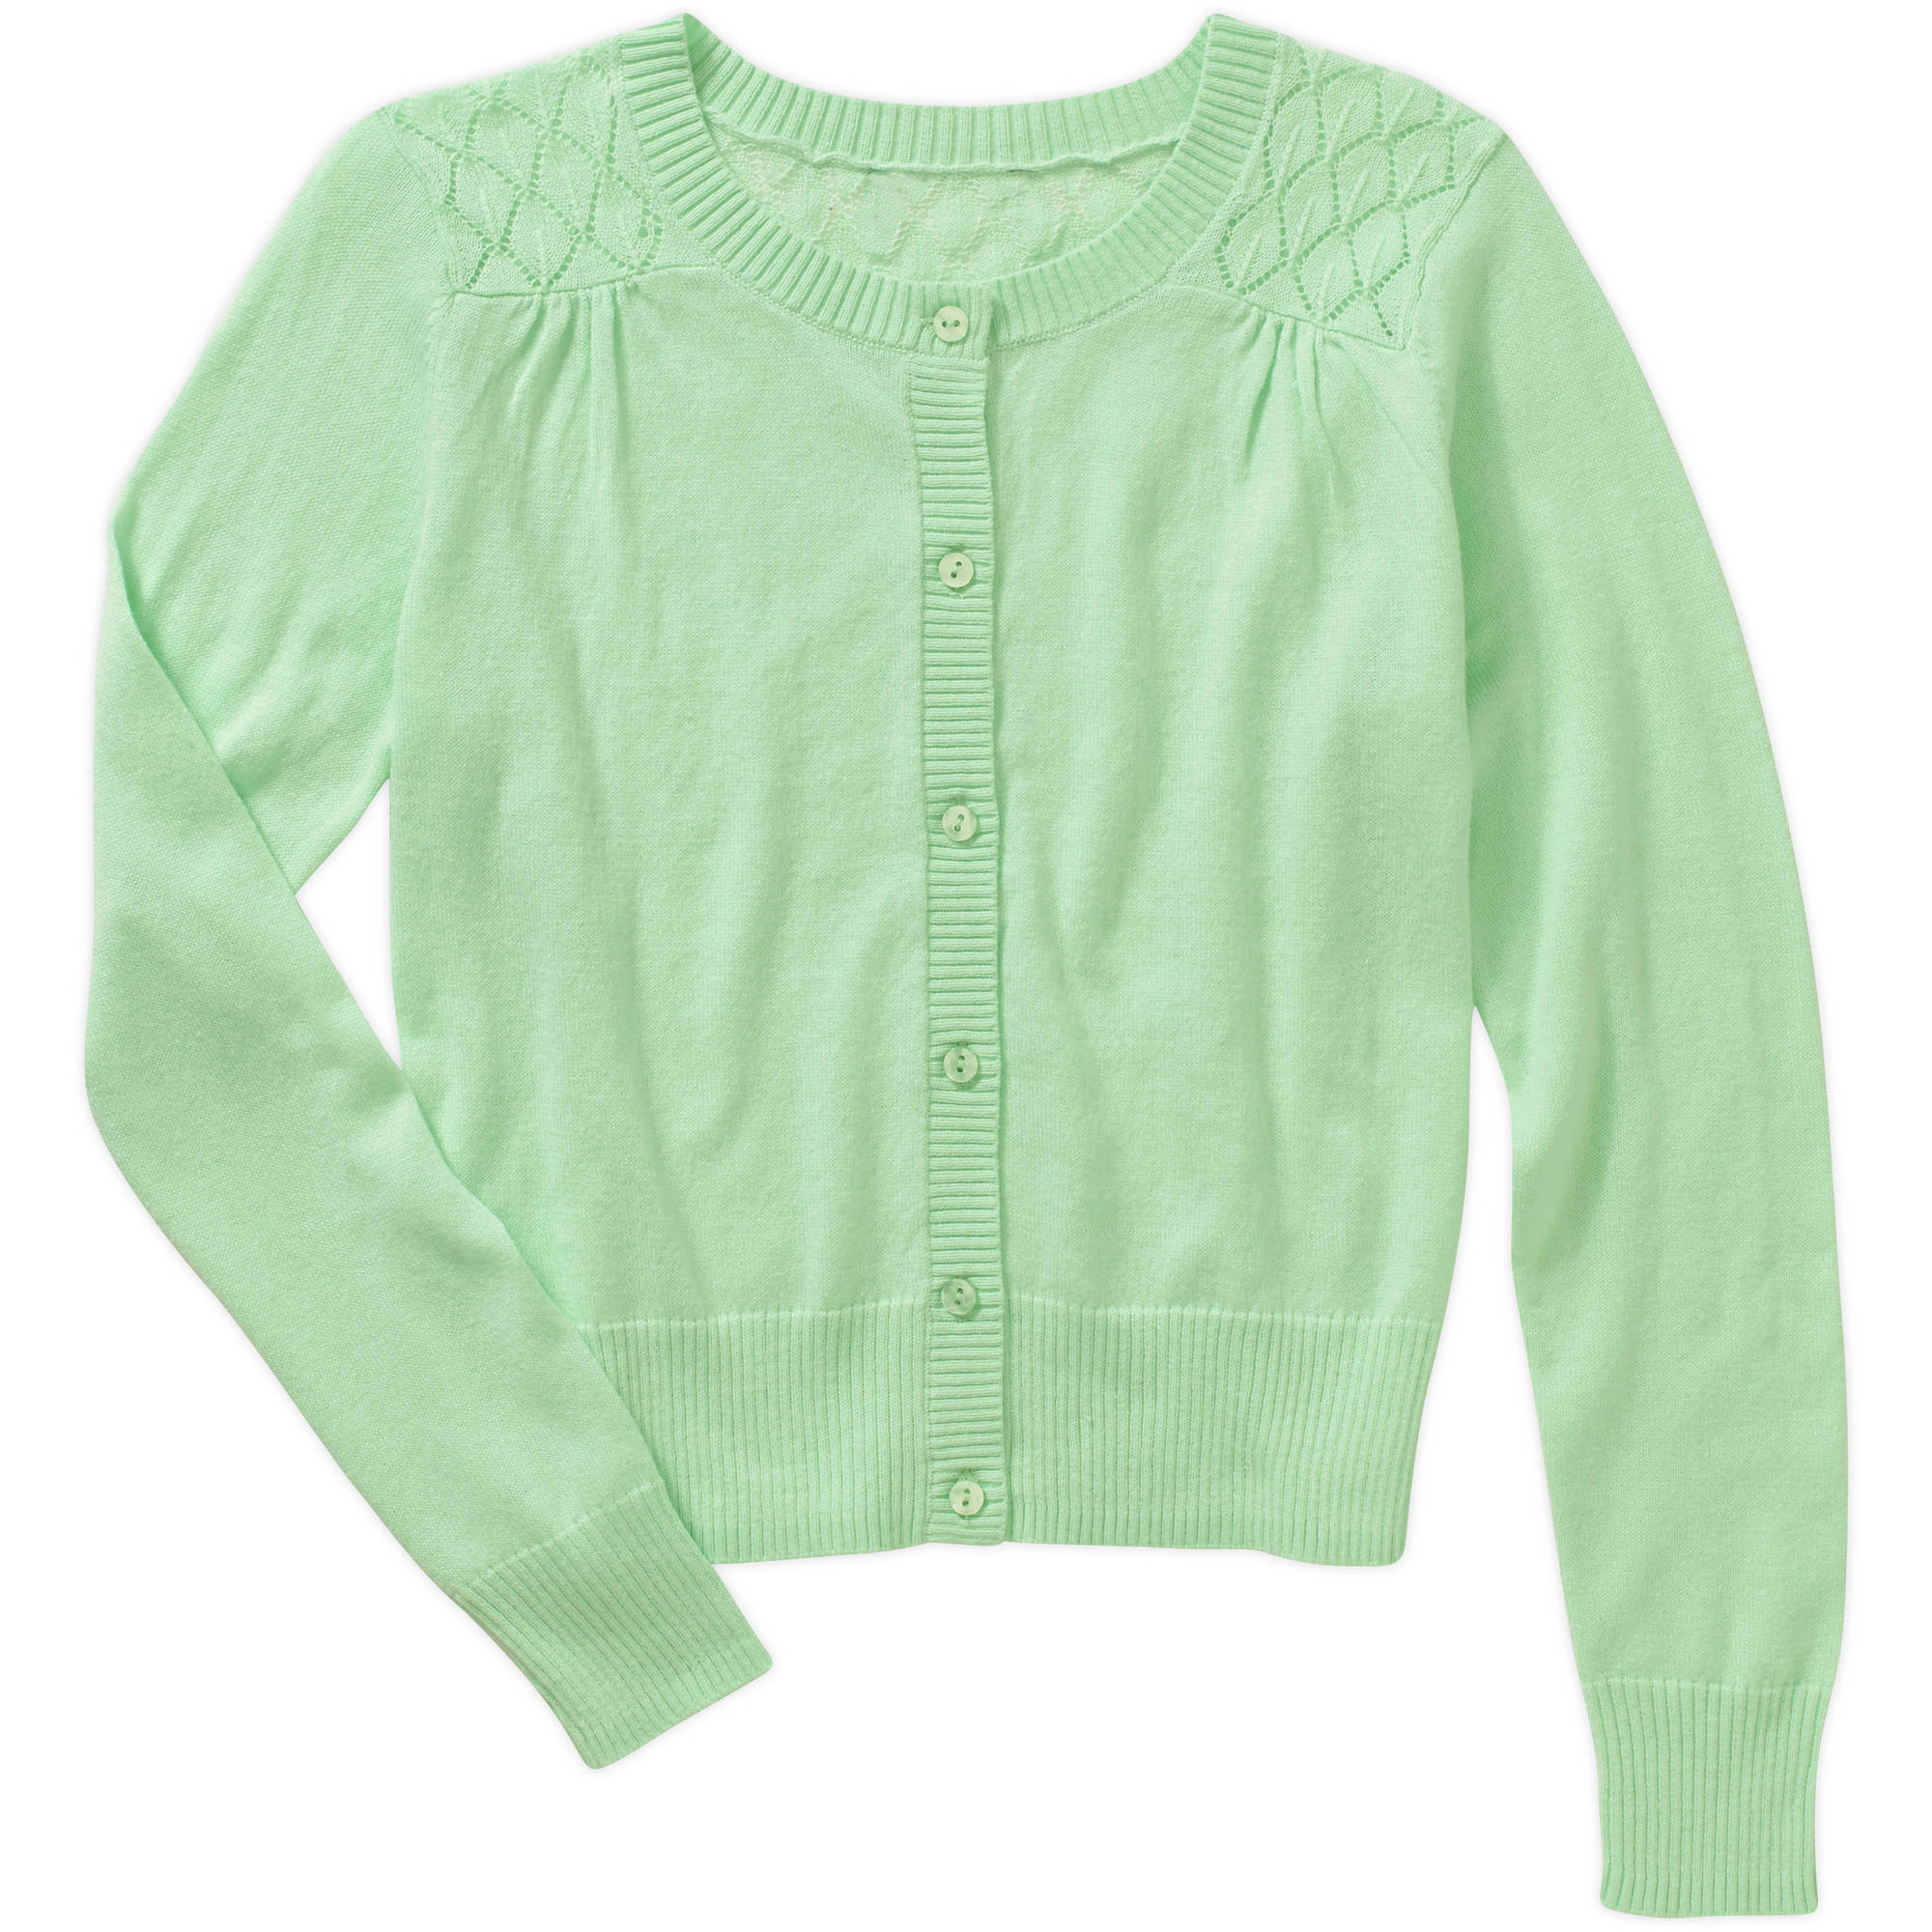 George Girls' Pointelle Cardigan